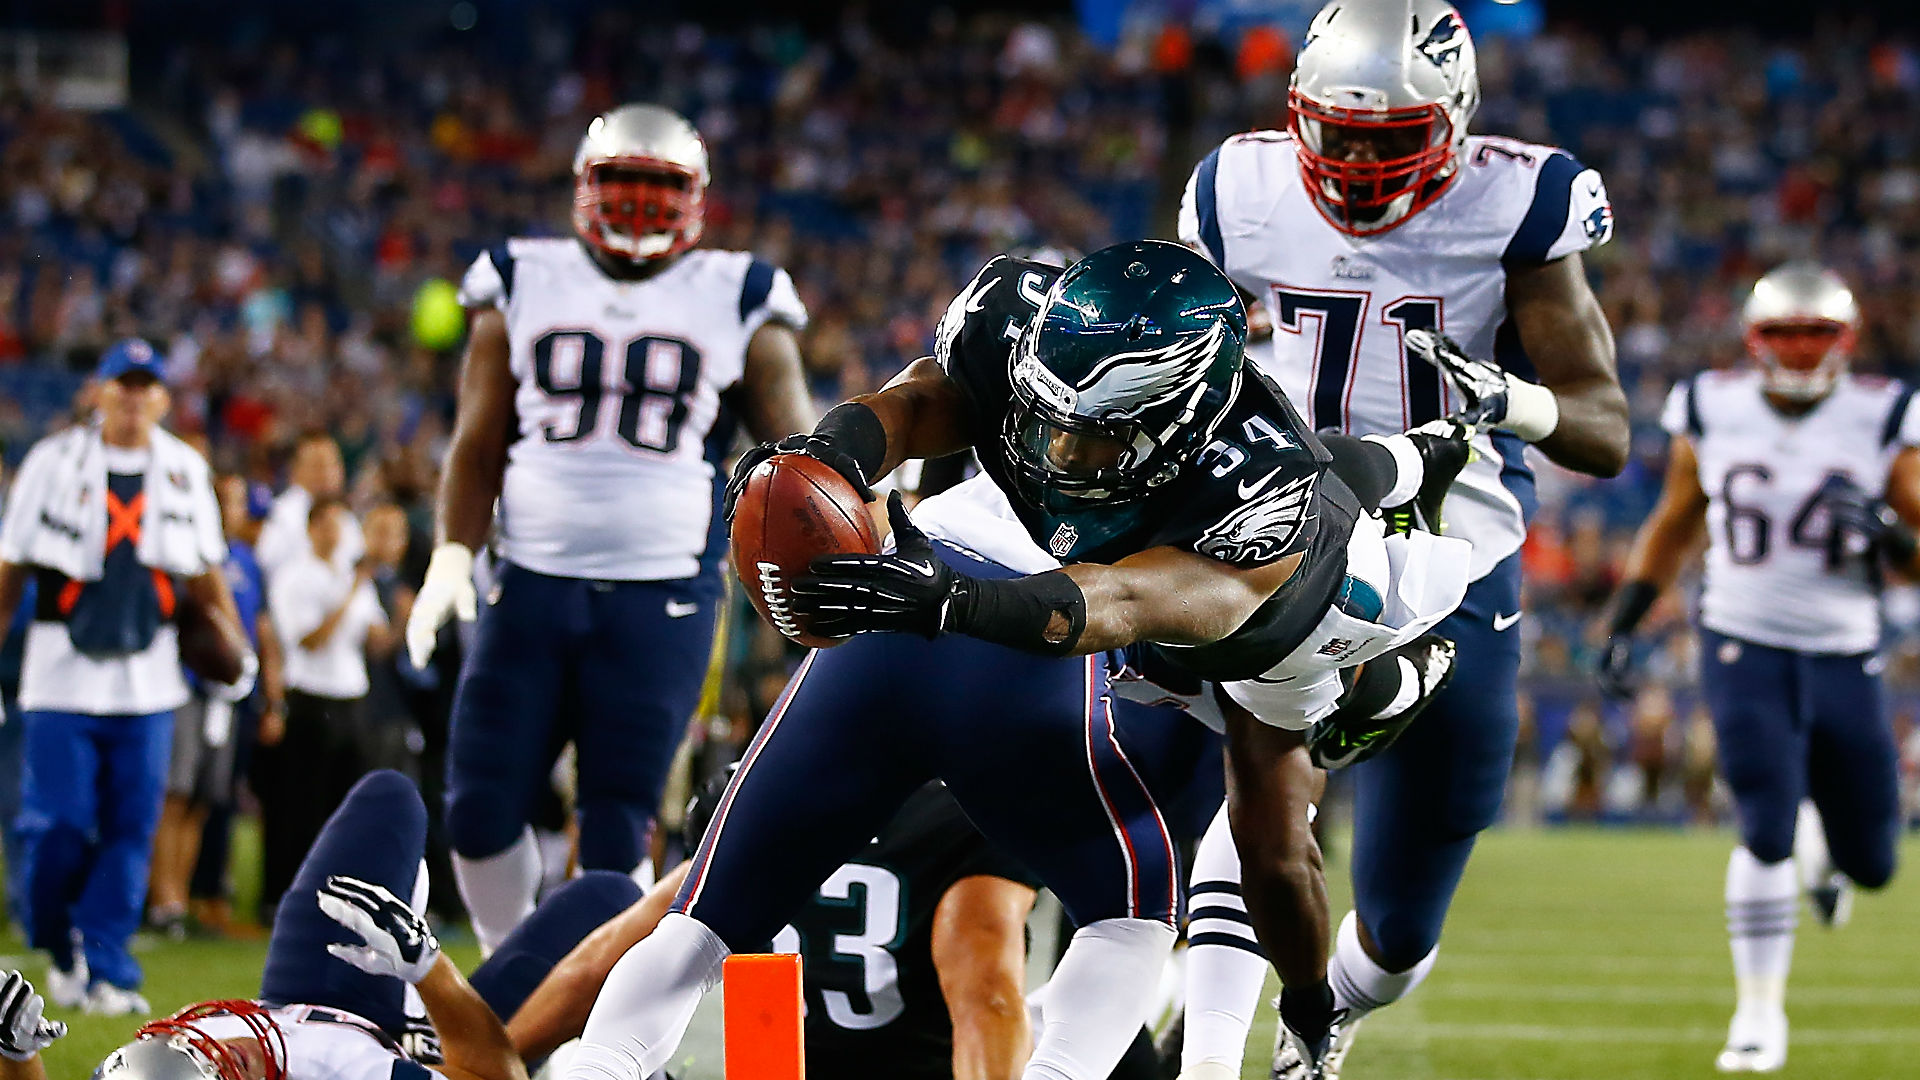 Eagles vs. Patriots, Week 13: Time, TV channel, injuries ...